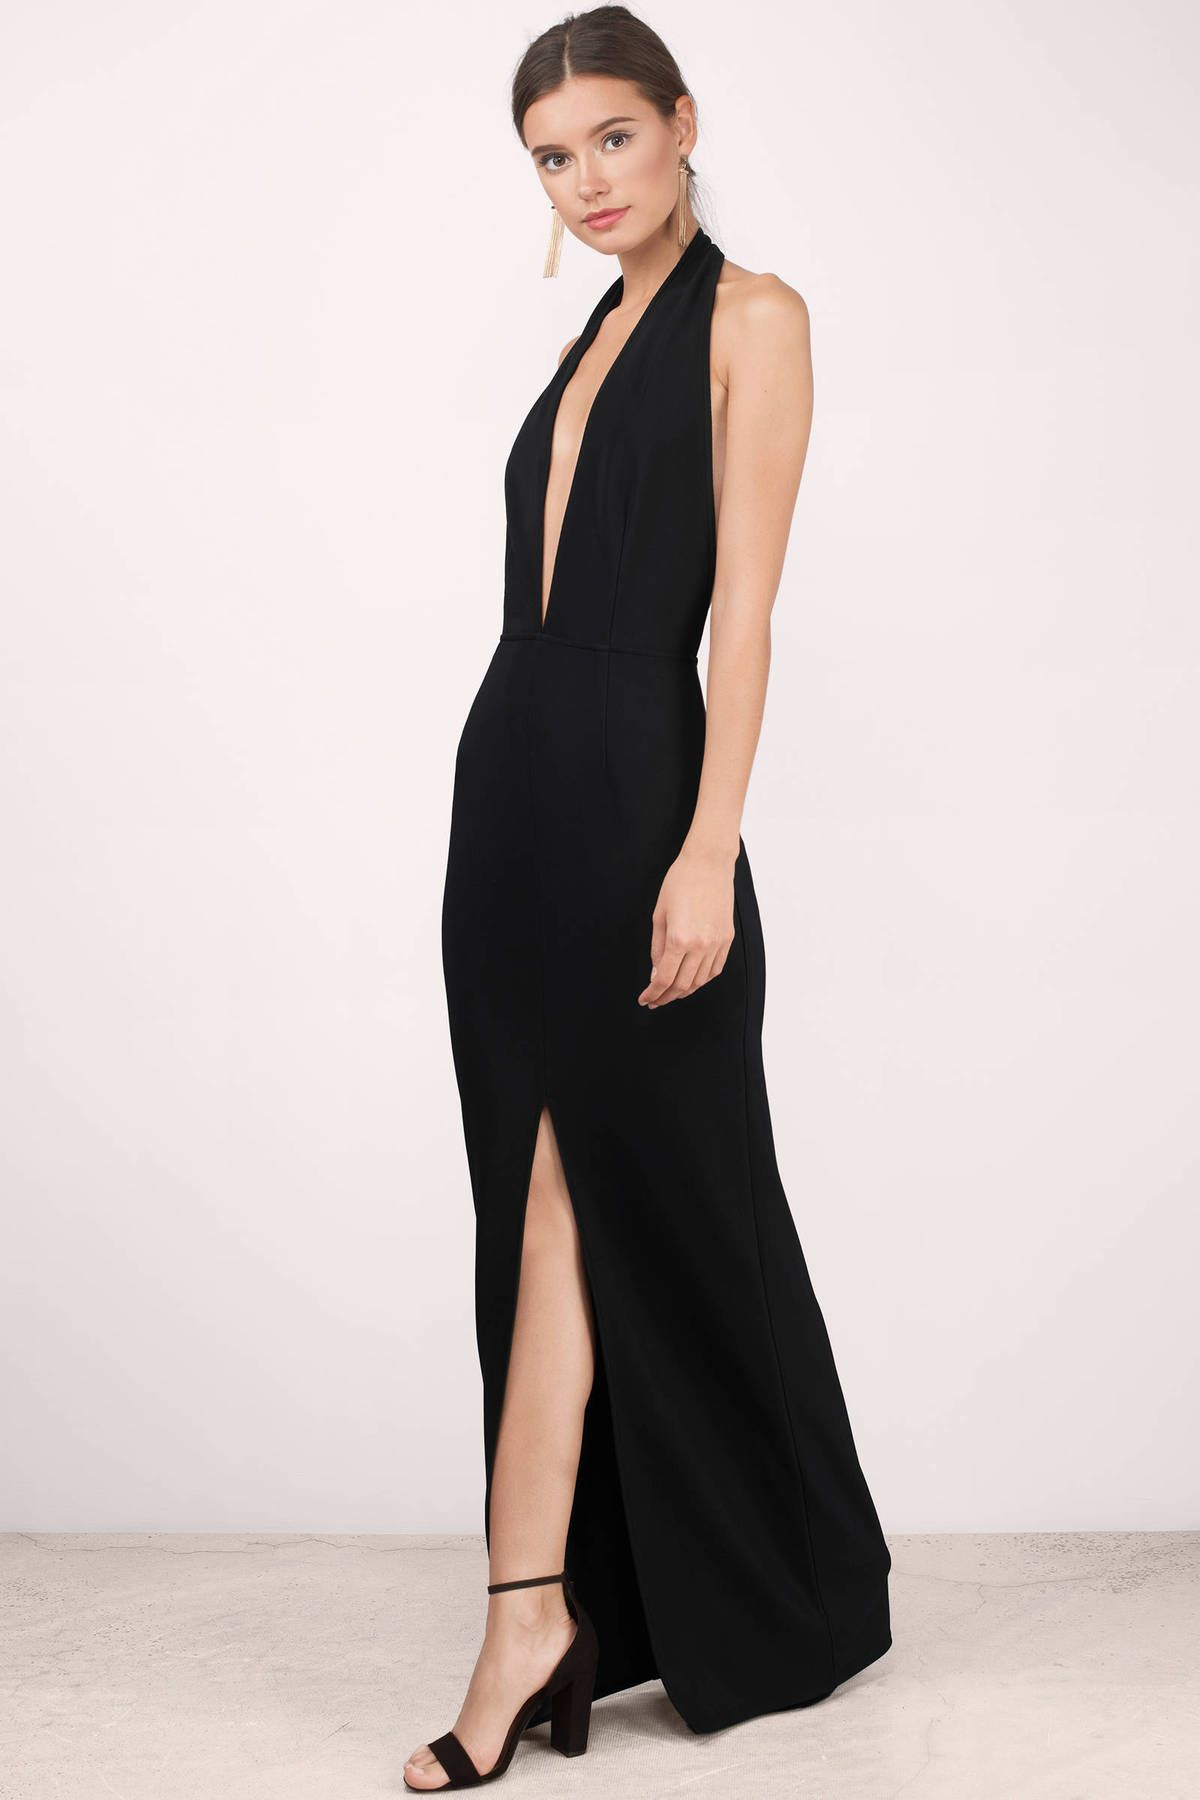 Turn heads with the Gala Deep Neck Maxi Dress. Featuring a halter plunging  neckline and backless maxi dress. Pair with heels and sta 26940eab4931